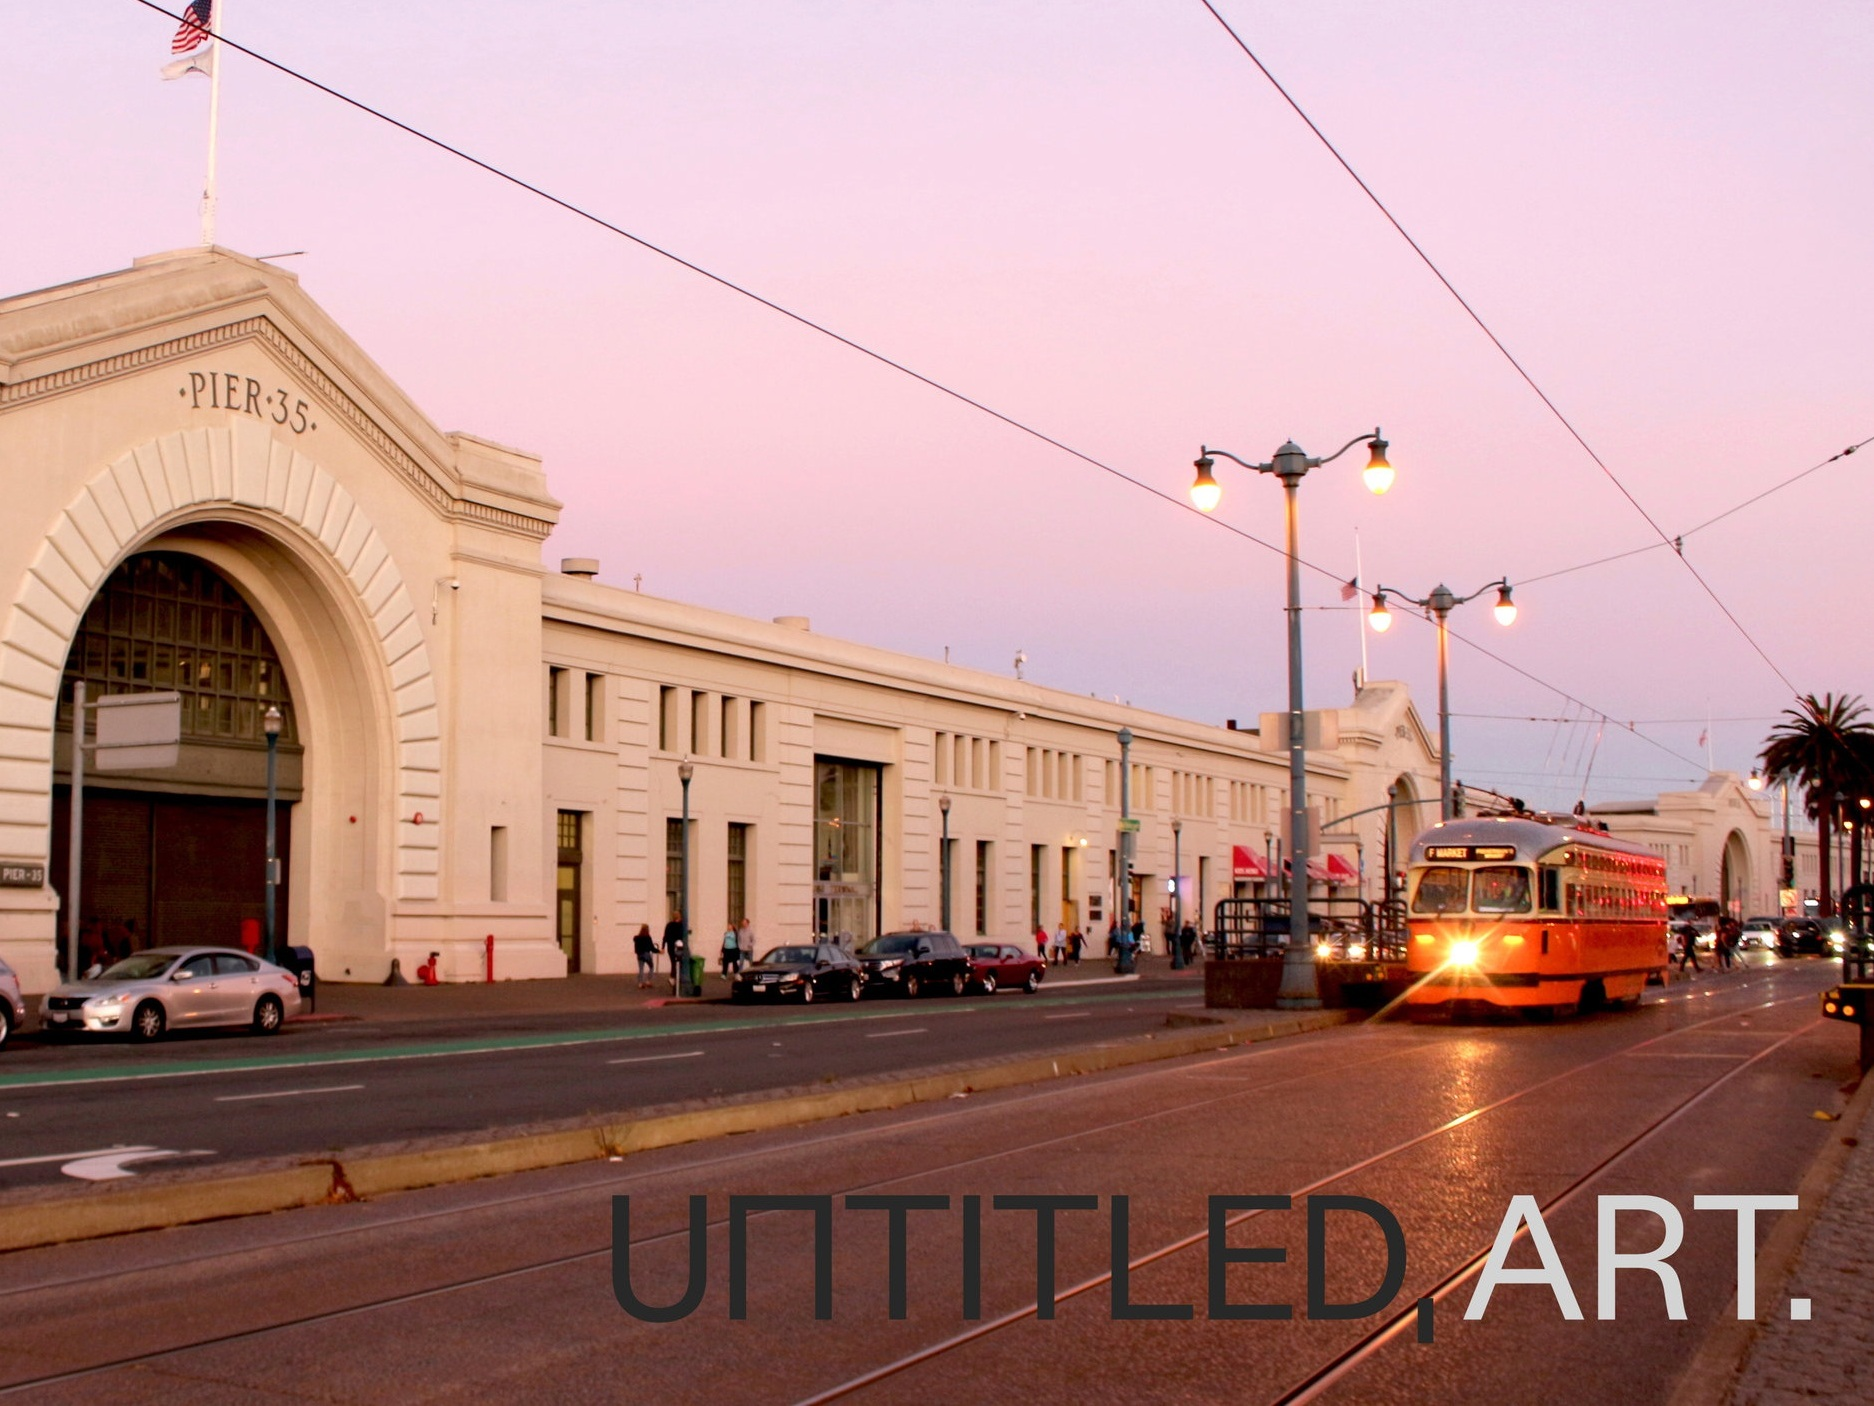 Untitled, art San Francisco   Du 18 au 20 janvier 2019 @ Pier 35 - 1454 The Embarcadero